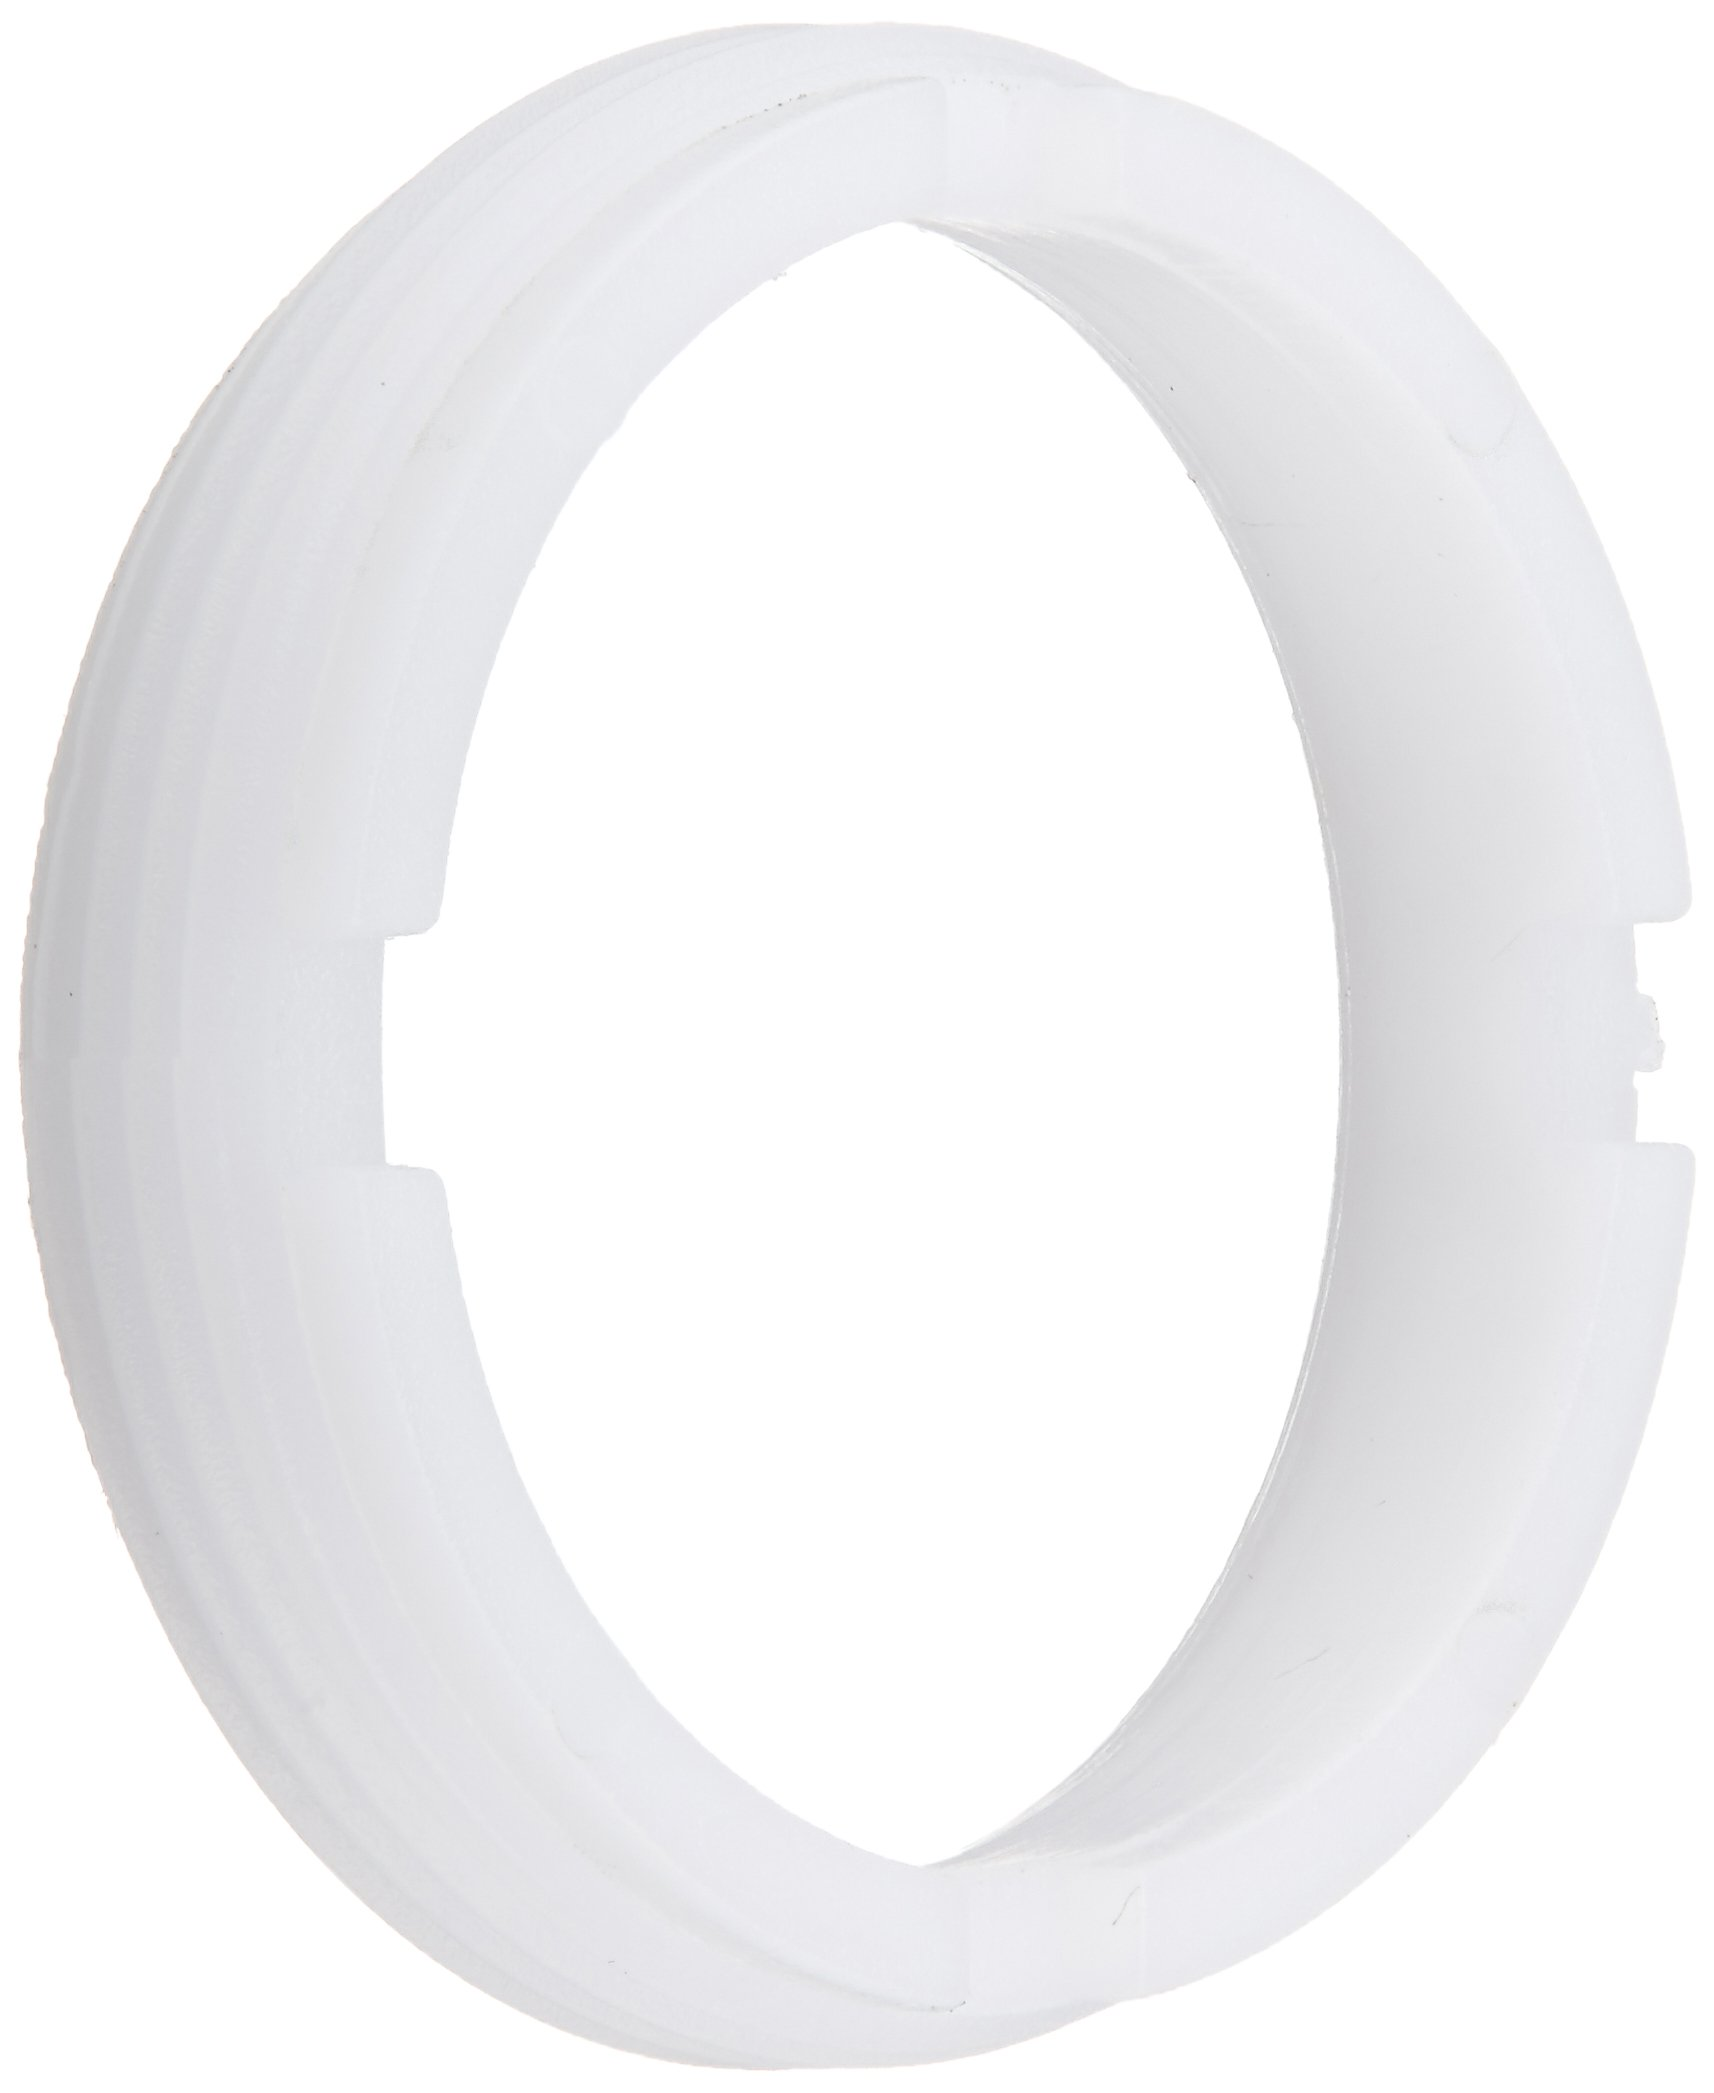 Danco, Inc. 80965 Adjusting Ring, for Use with Delta Kitchen, Lavatory, Tub and Shower Faucets, Plastic